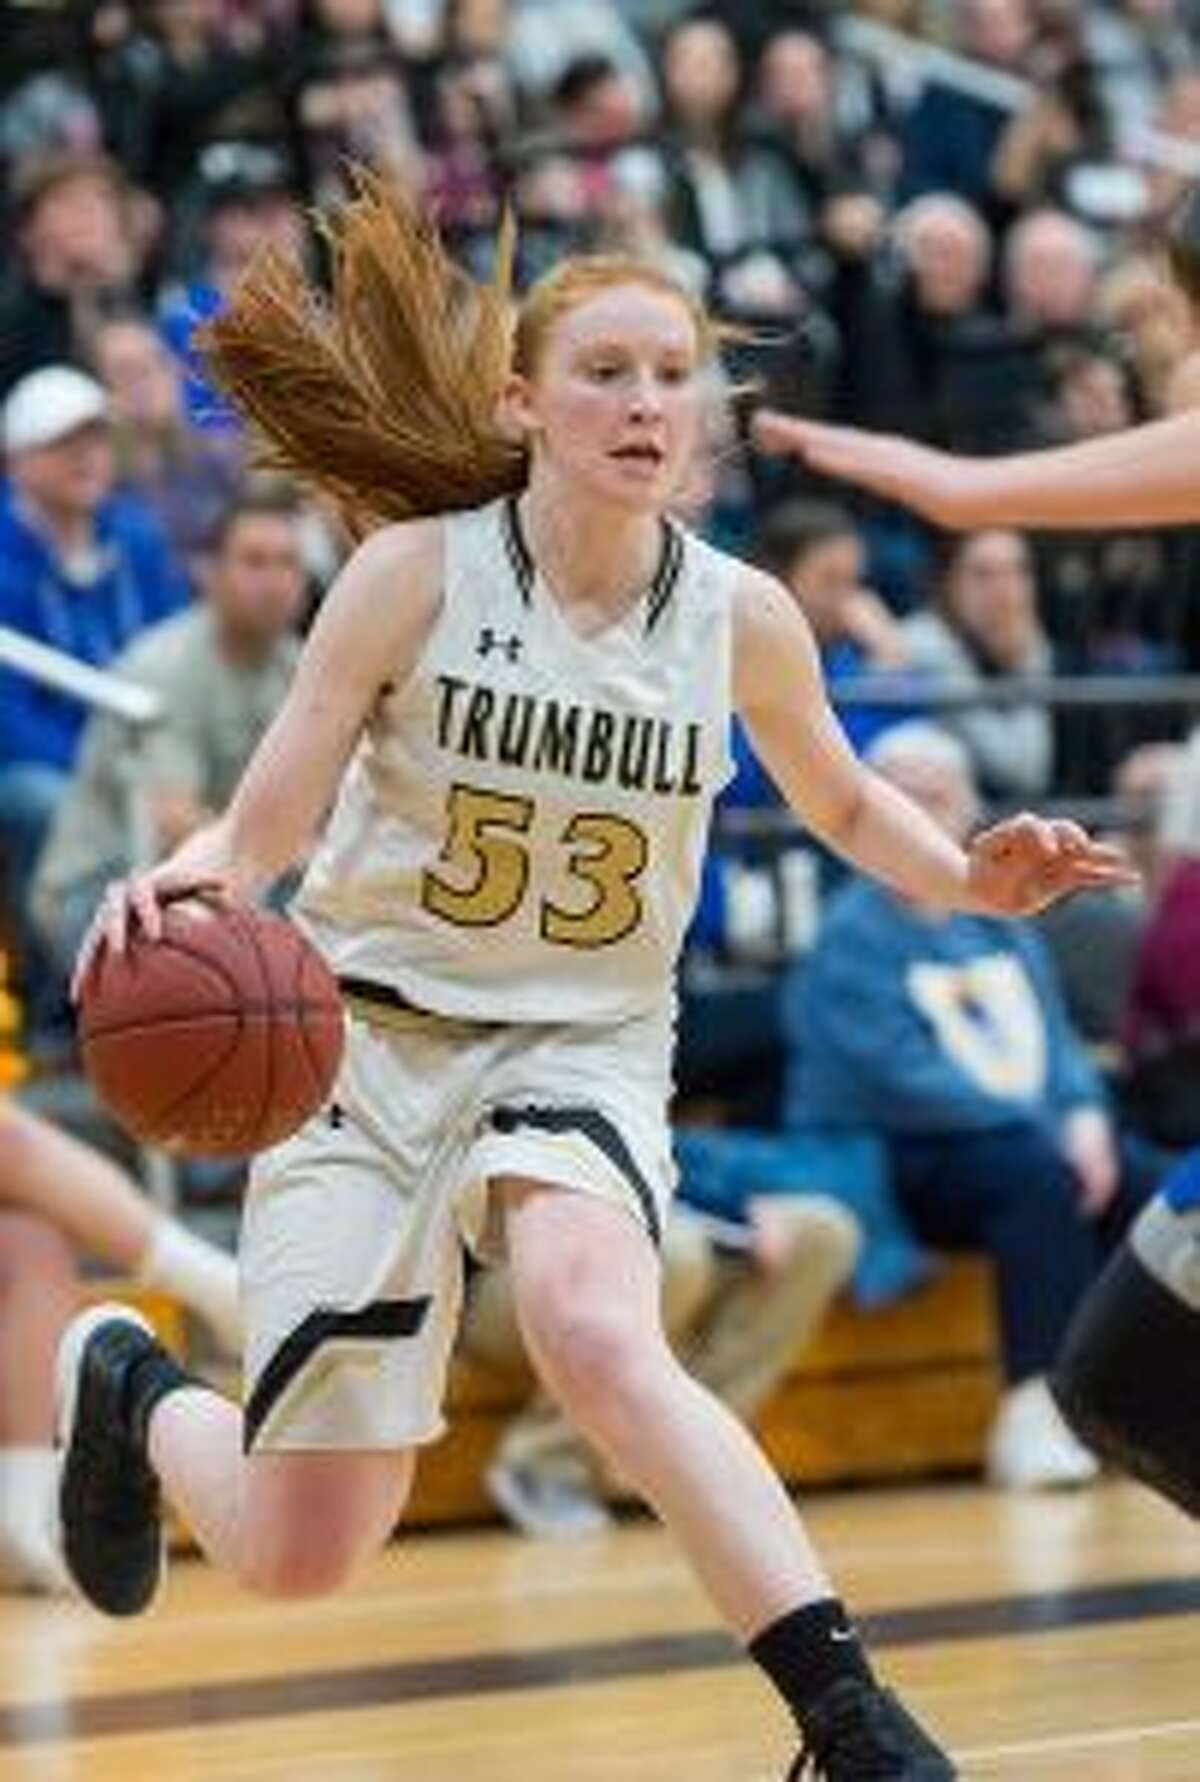 Taylor Brown led Trumbull with 13 points.